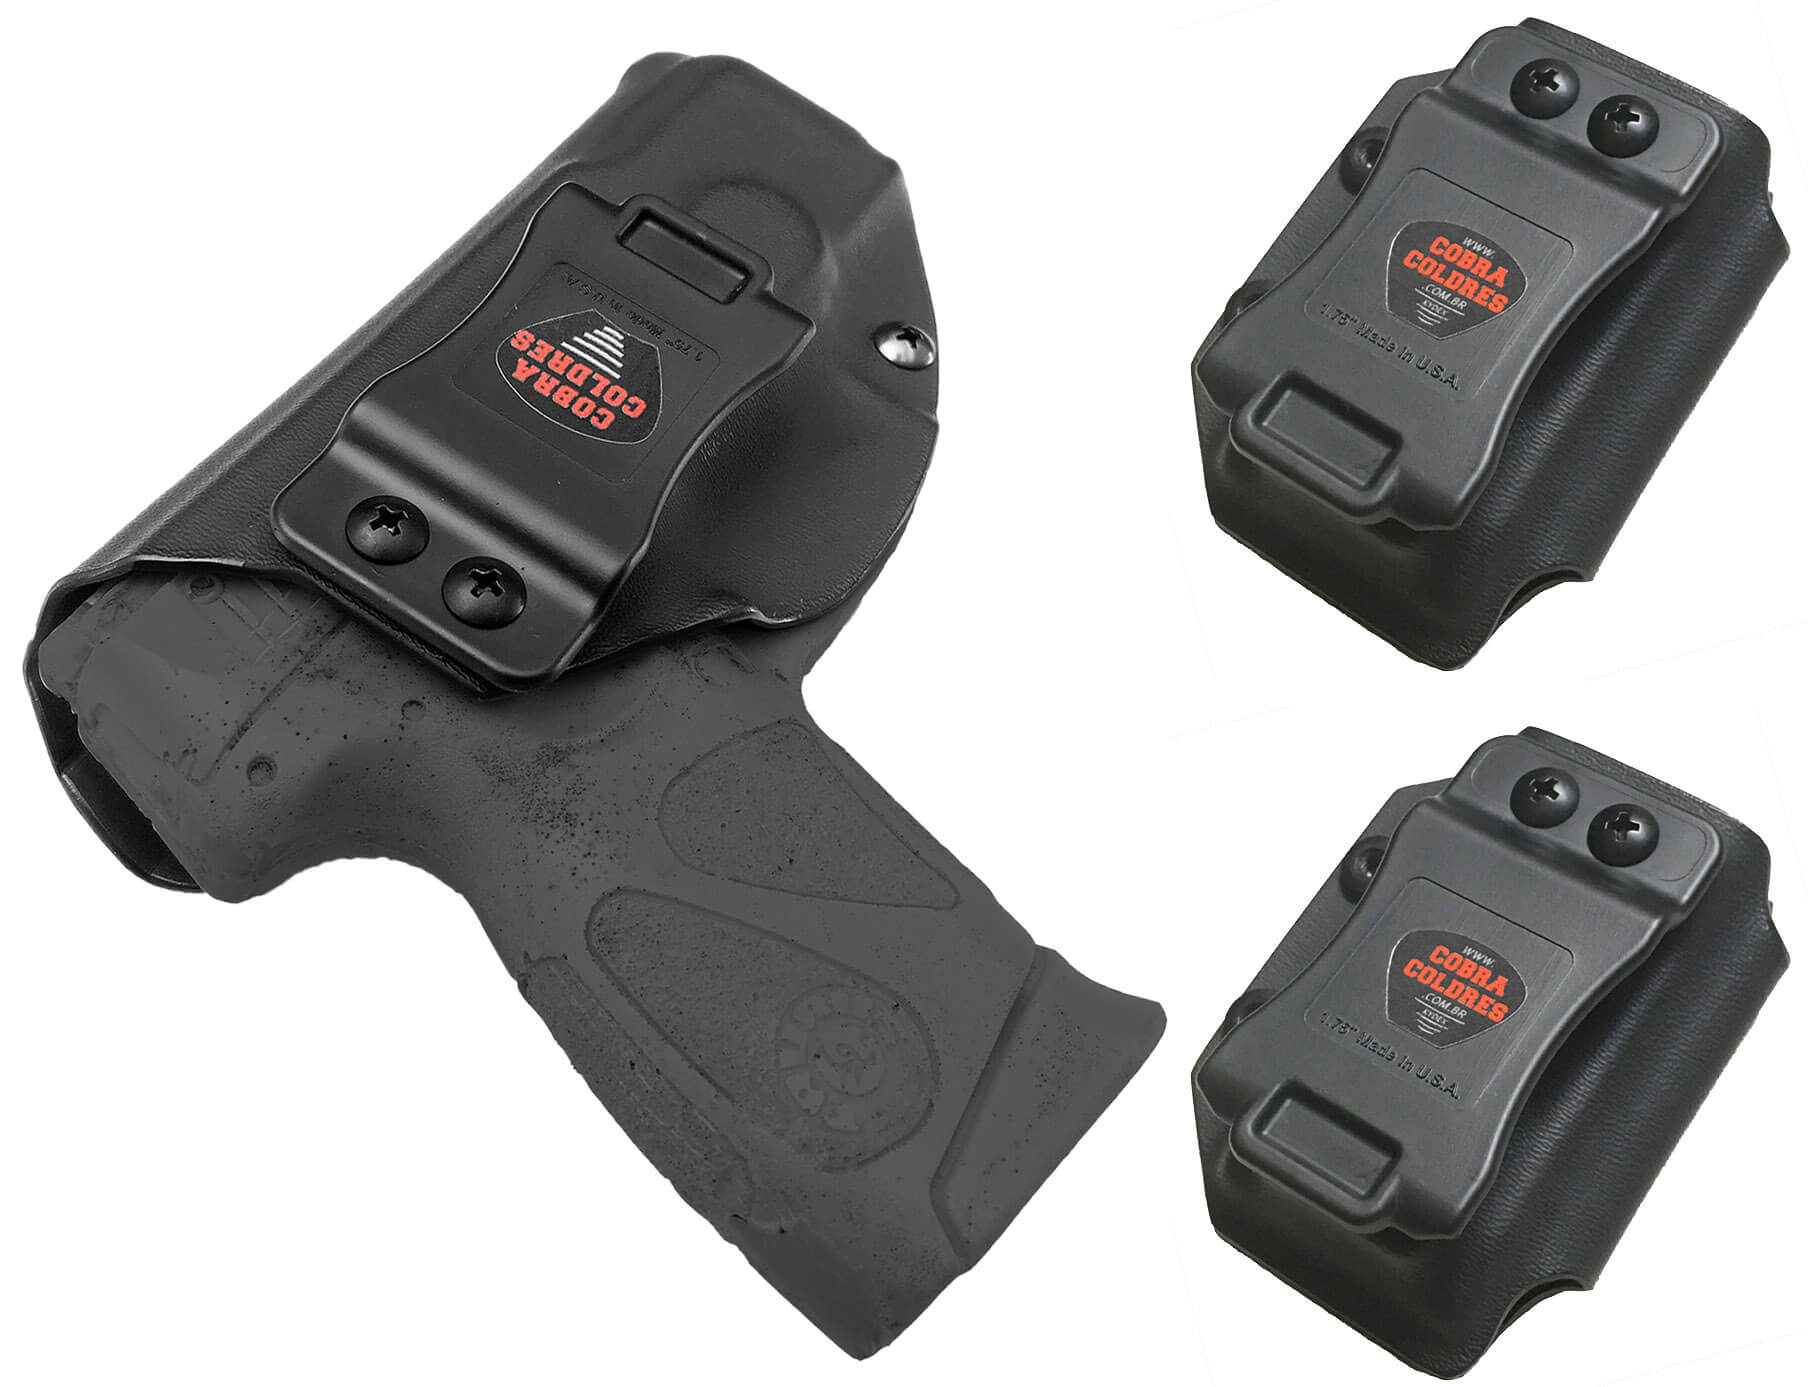 Coldre [G2c] 9mm Kydex Slim + 2 Porta-Carregadores Saque Rápido Velado Kydex® 080